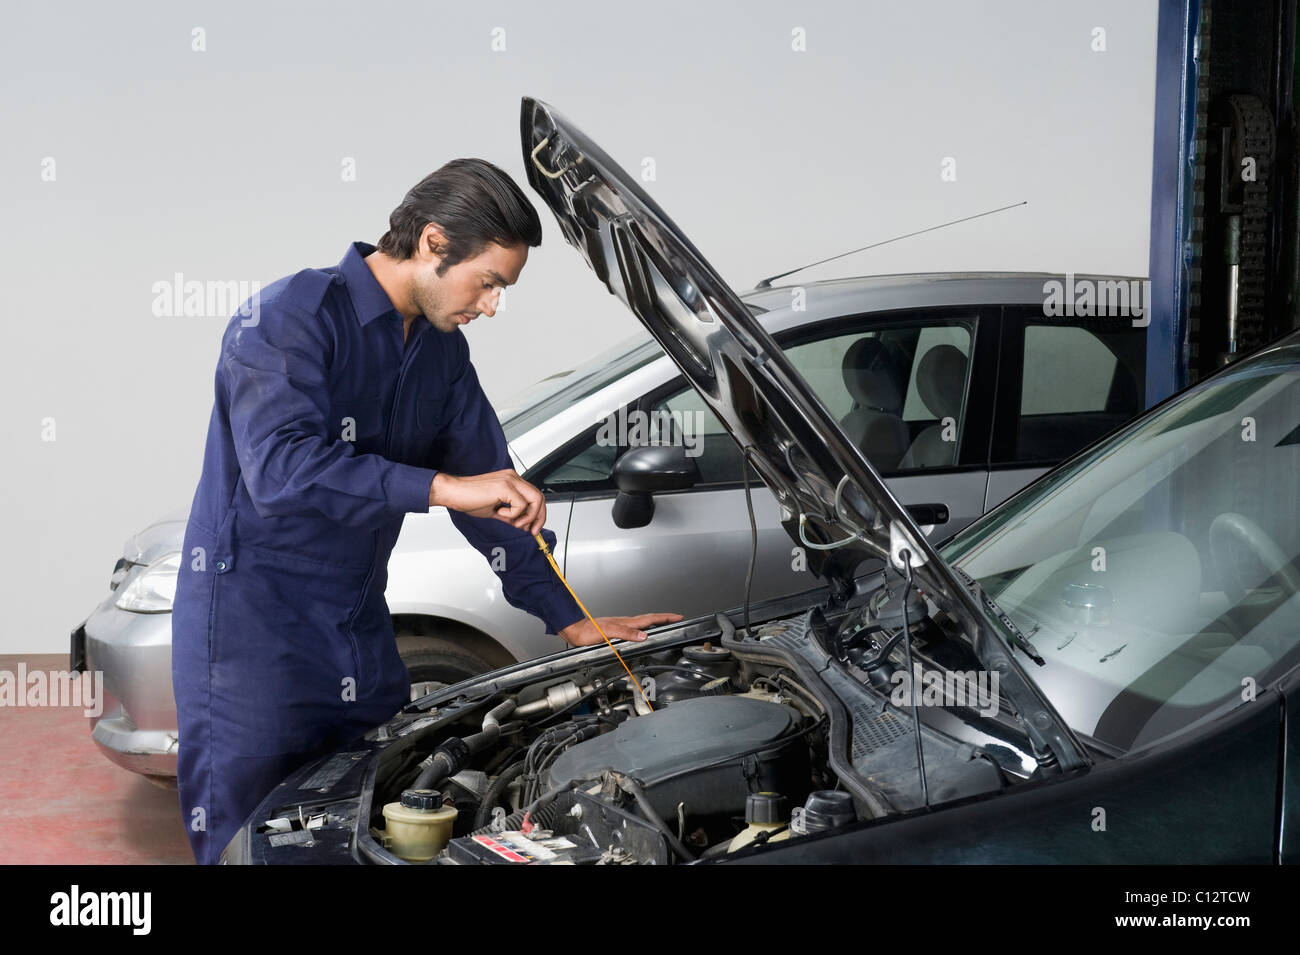 Auto mechanic checking oil level of a car in a garage - Stock Image